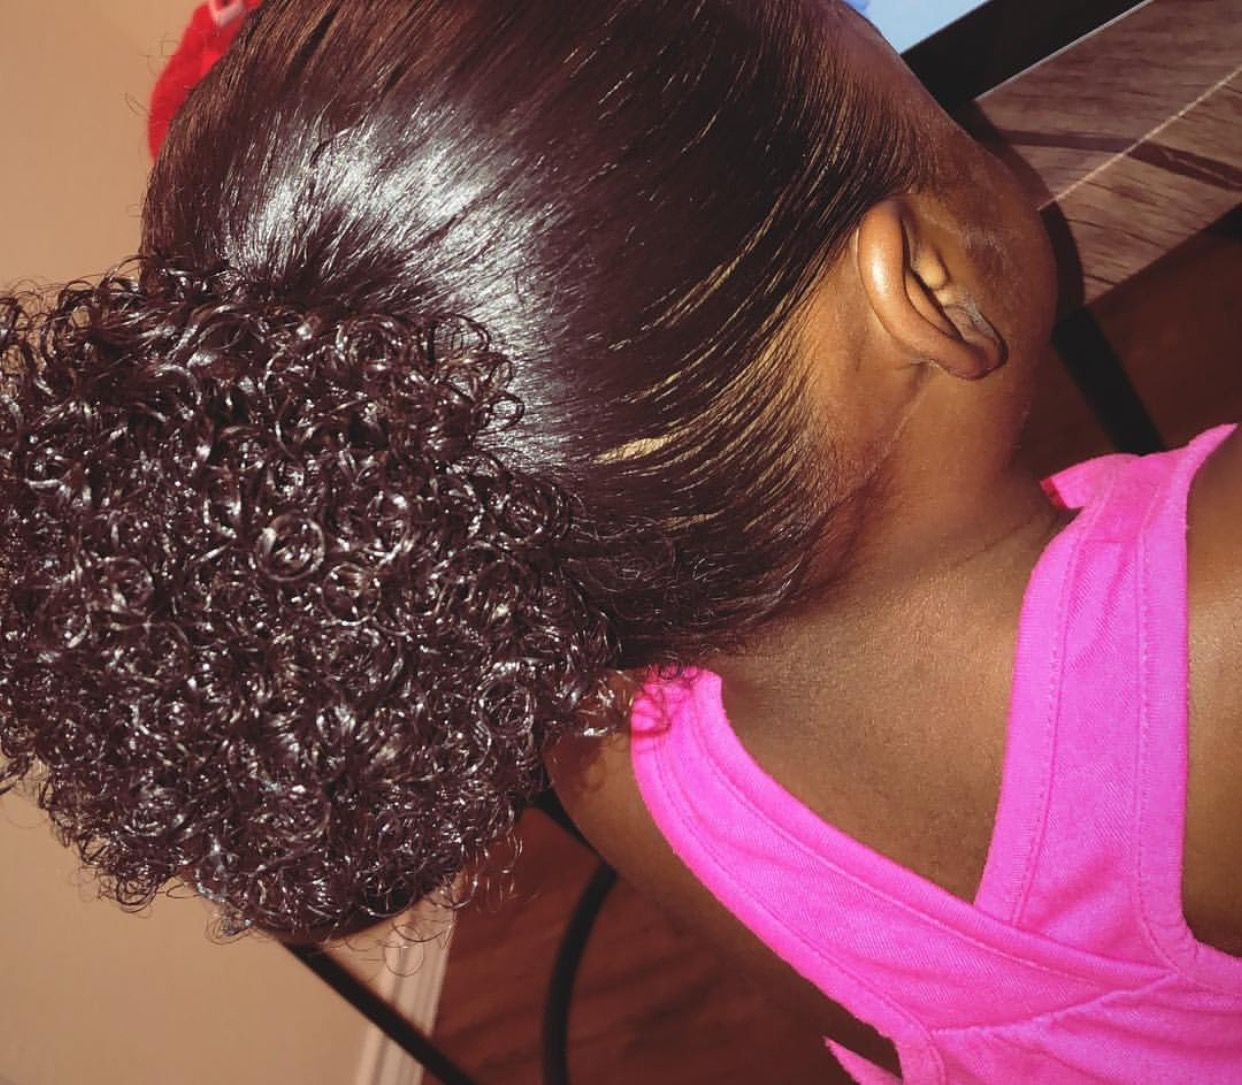 Cute hairstyles for kids hairstyleforblackwomen.net 152